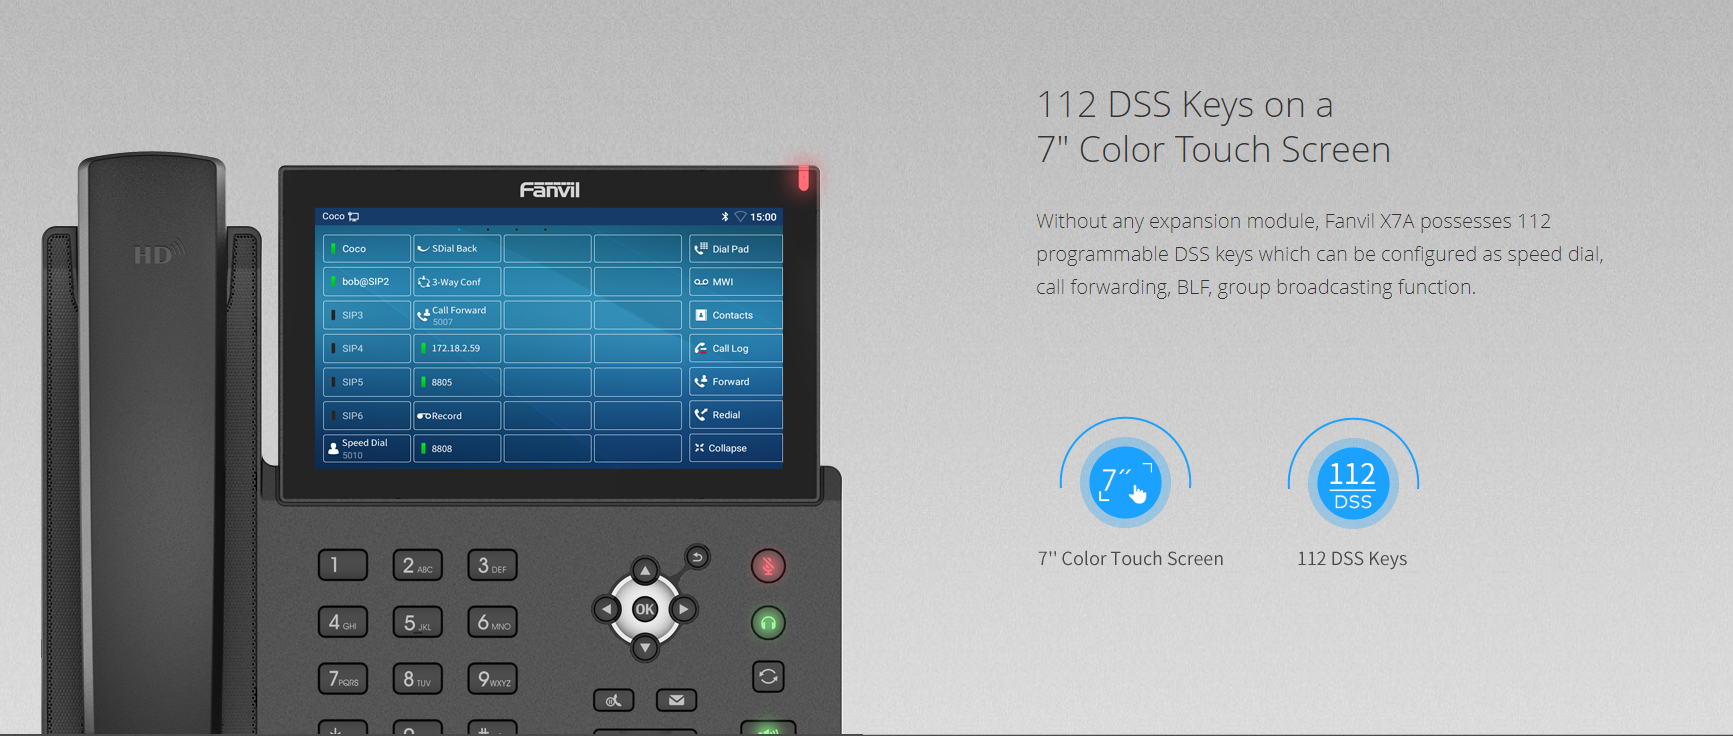 Fanvil X7A Android Touch Screen IP Phone - Hong Kong Supplier - Sipmax Technology Group - 香港代理